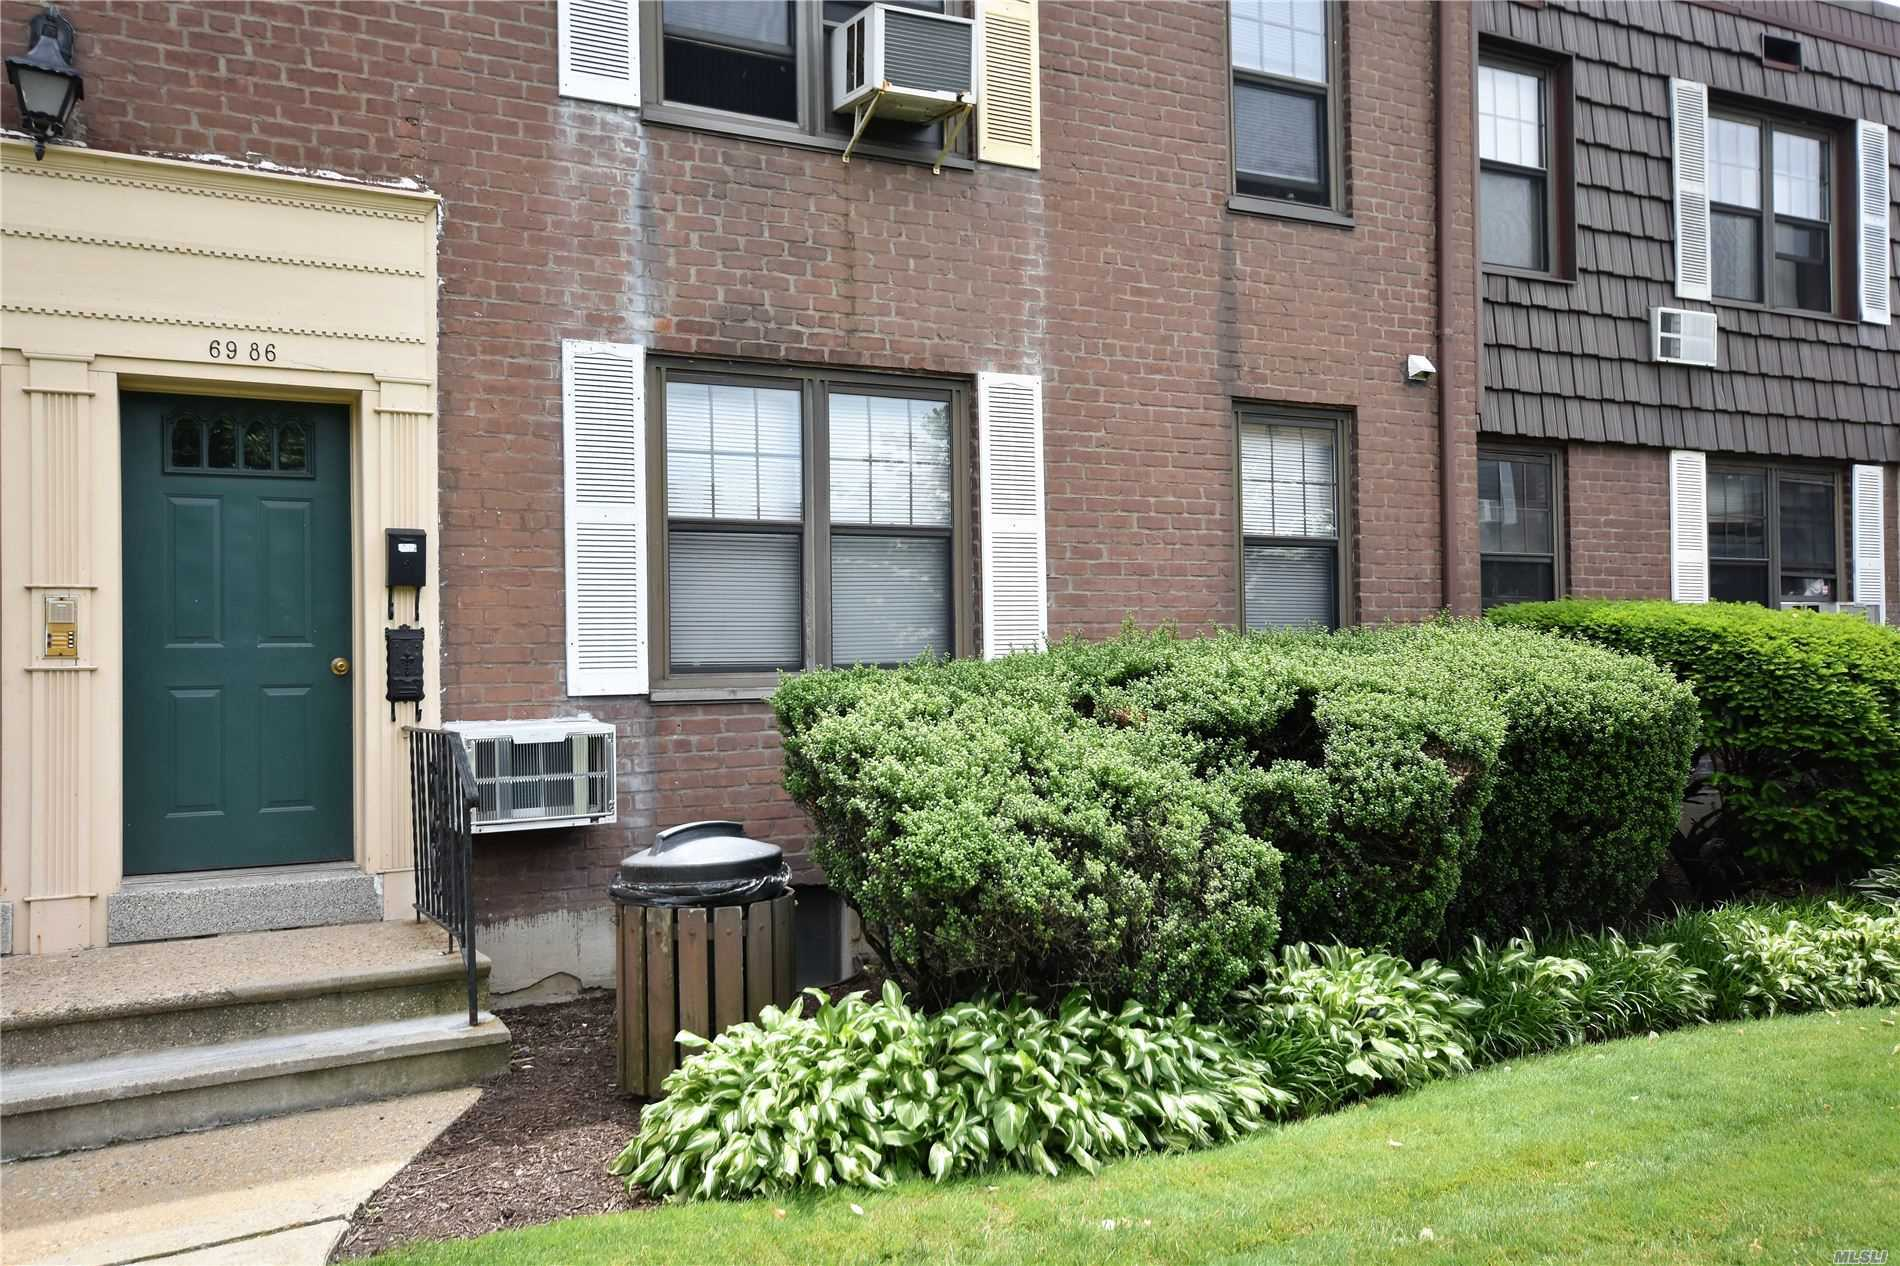 6986 136th St 11367 - One of Flushing Homes for Sale